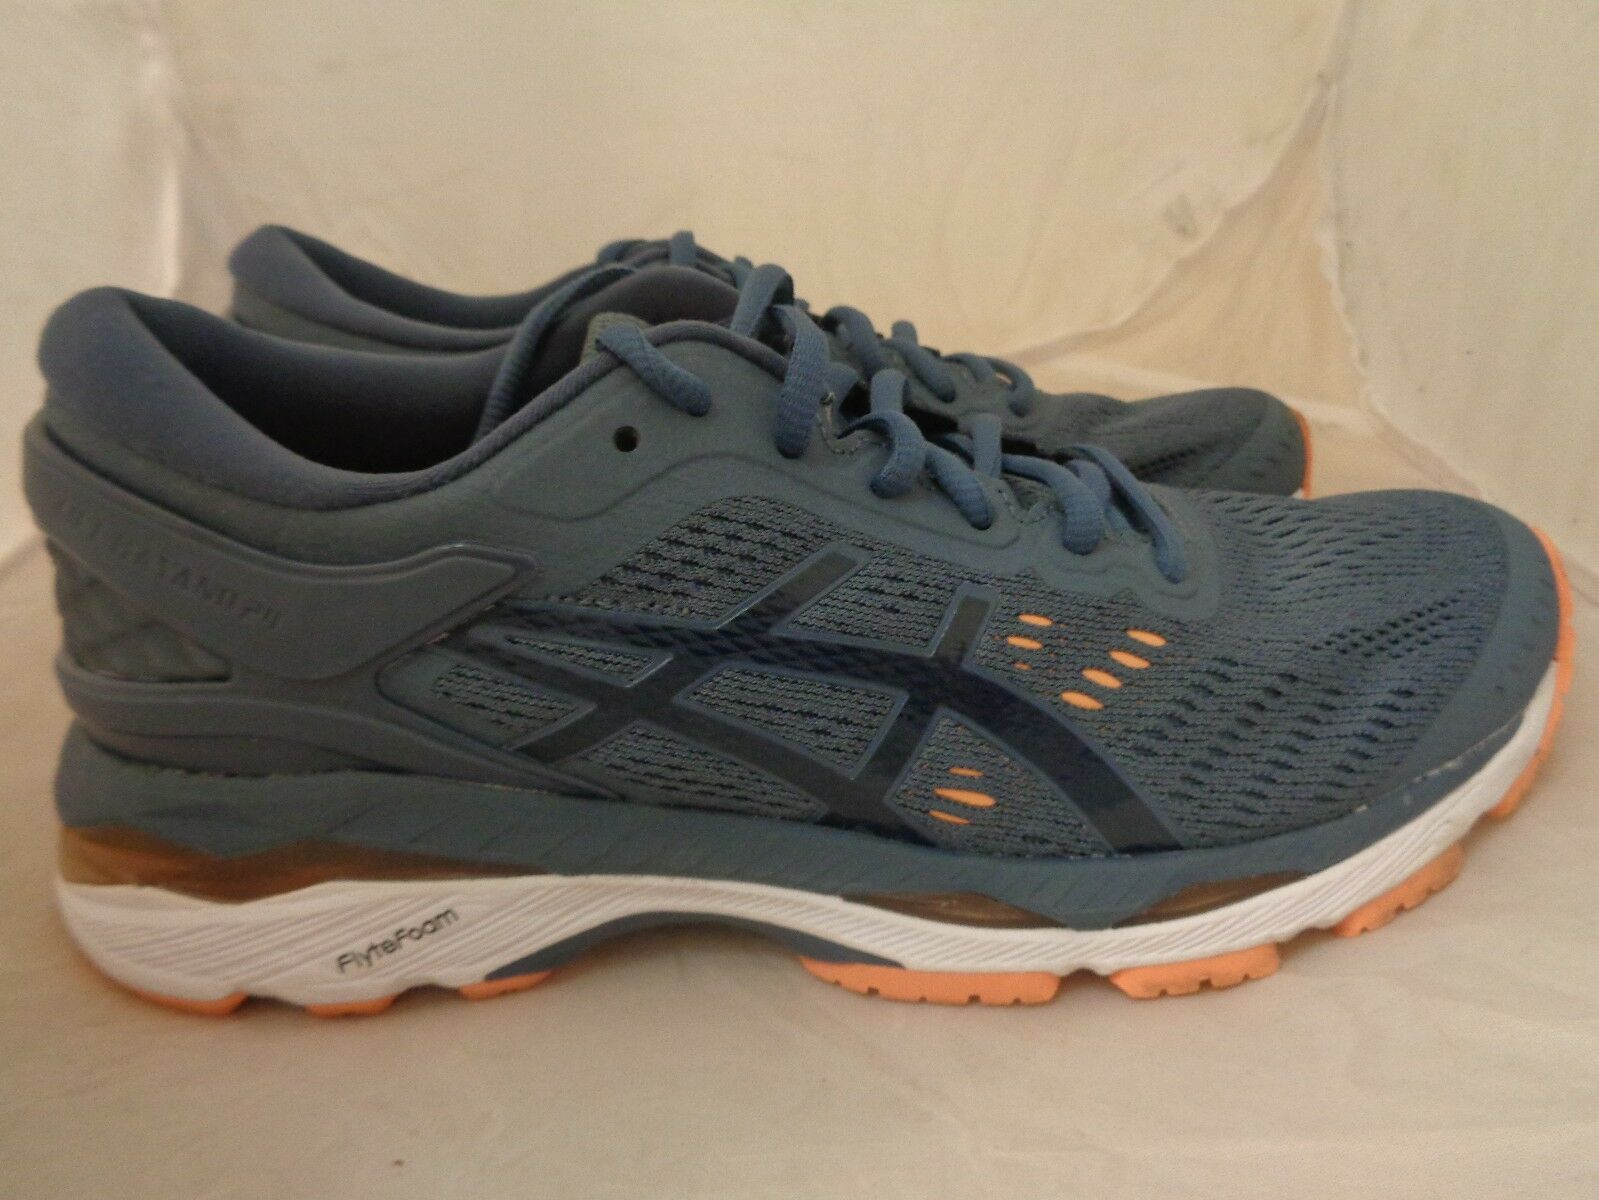 Asics Kayano 24 Ladies Running Shoes UK 5 US 7 EUR 38 CM 24 REF 5648-